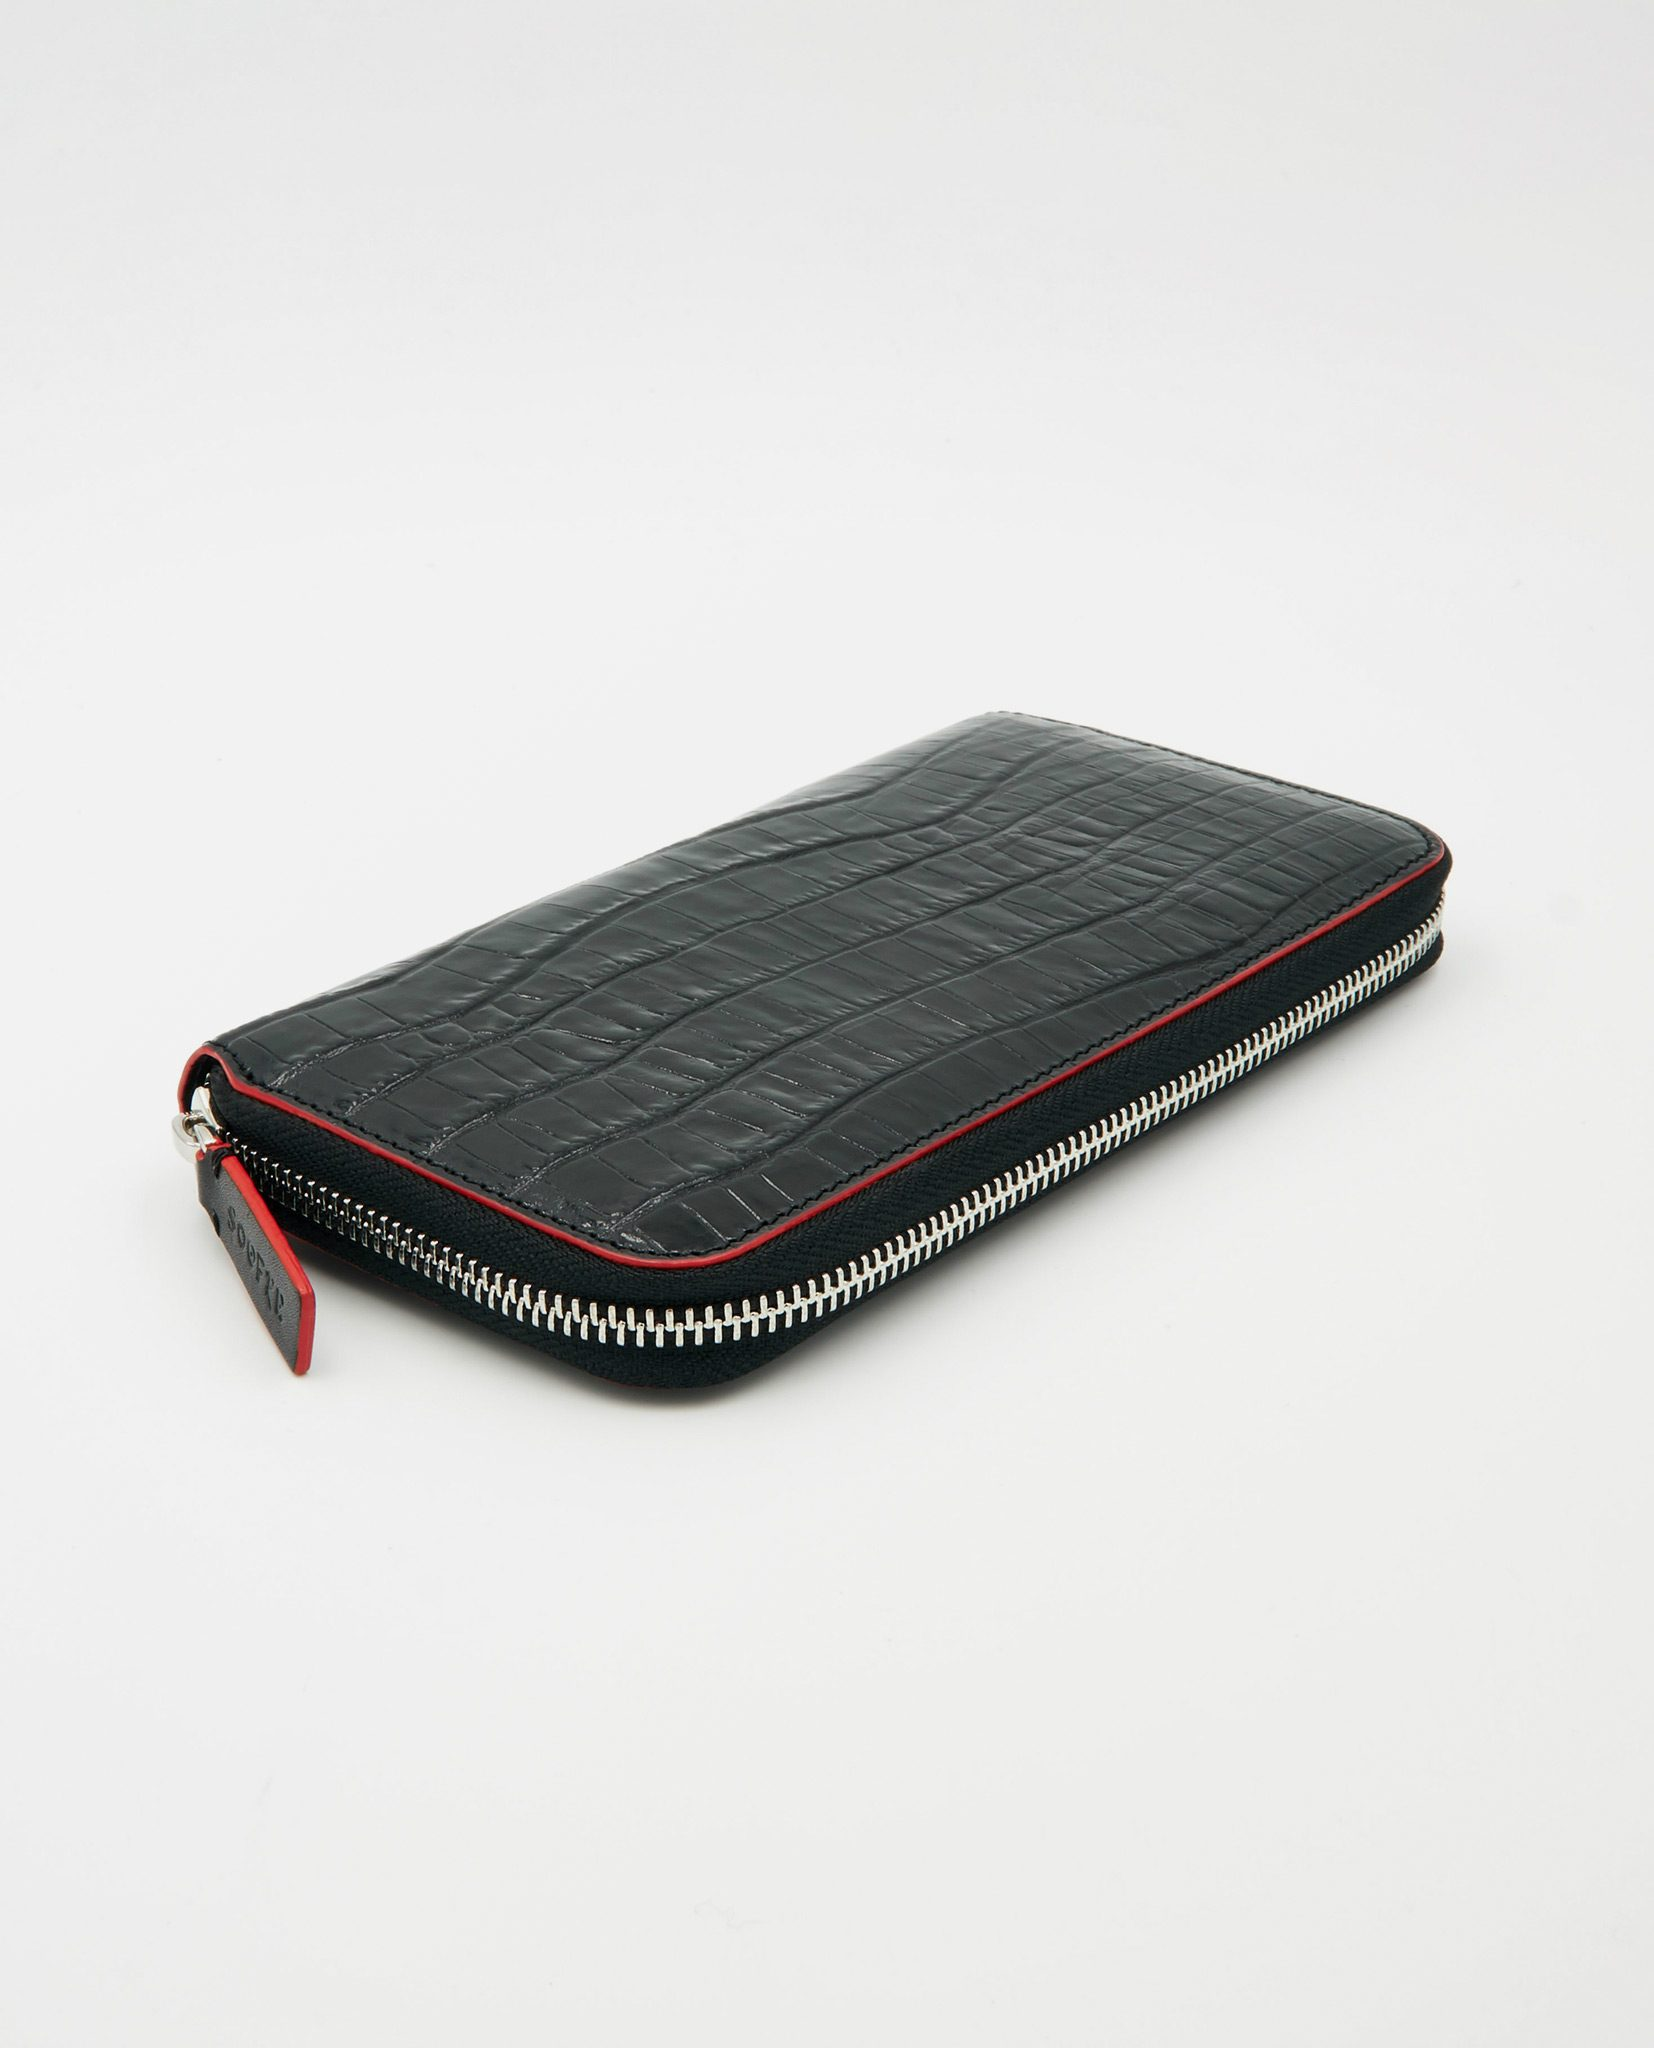 Soofre Women's Zip Wallet Crocodile Embossed Leather Black-Red